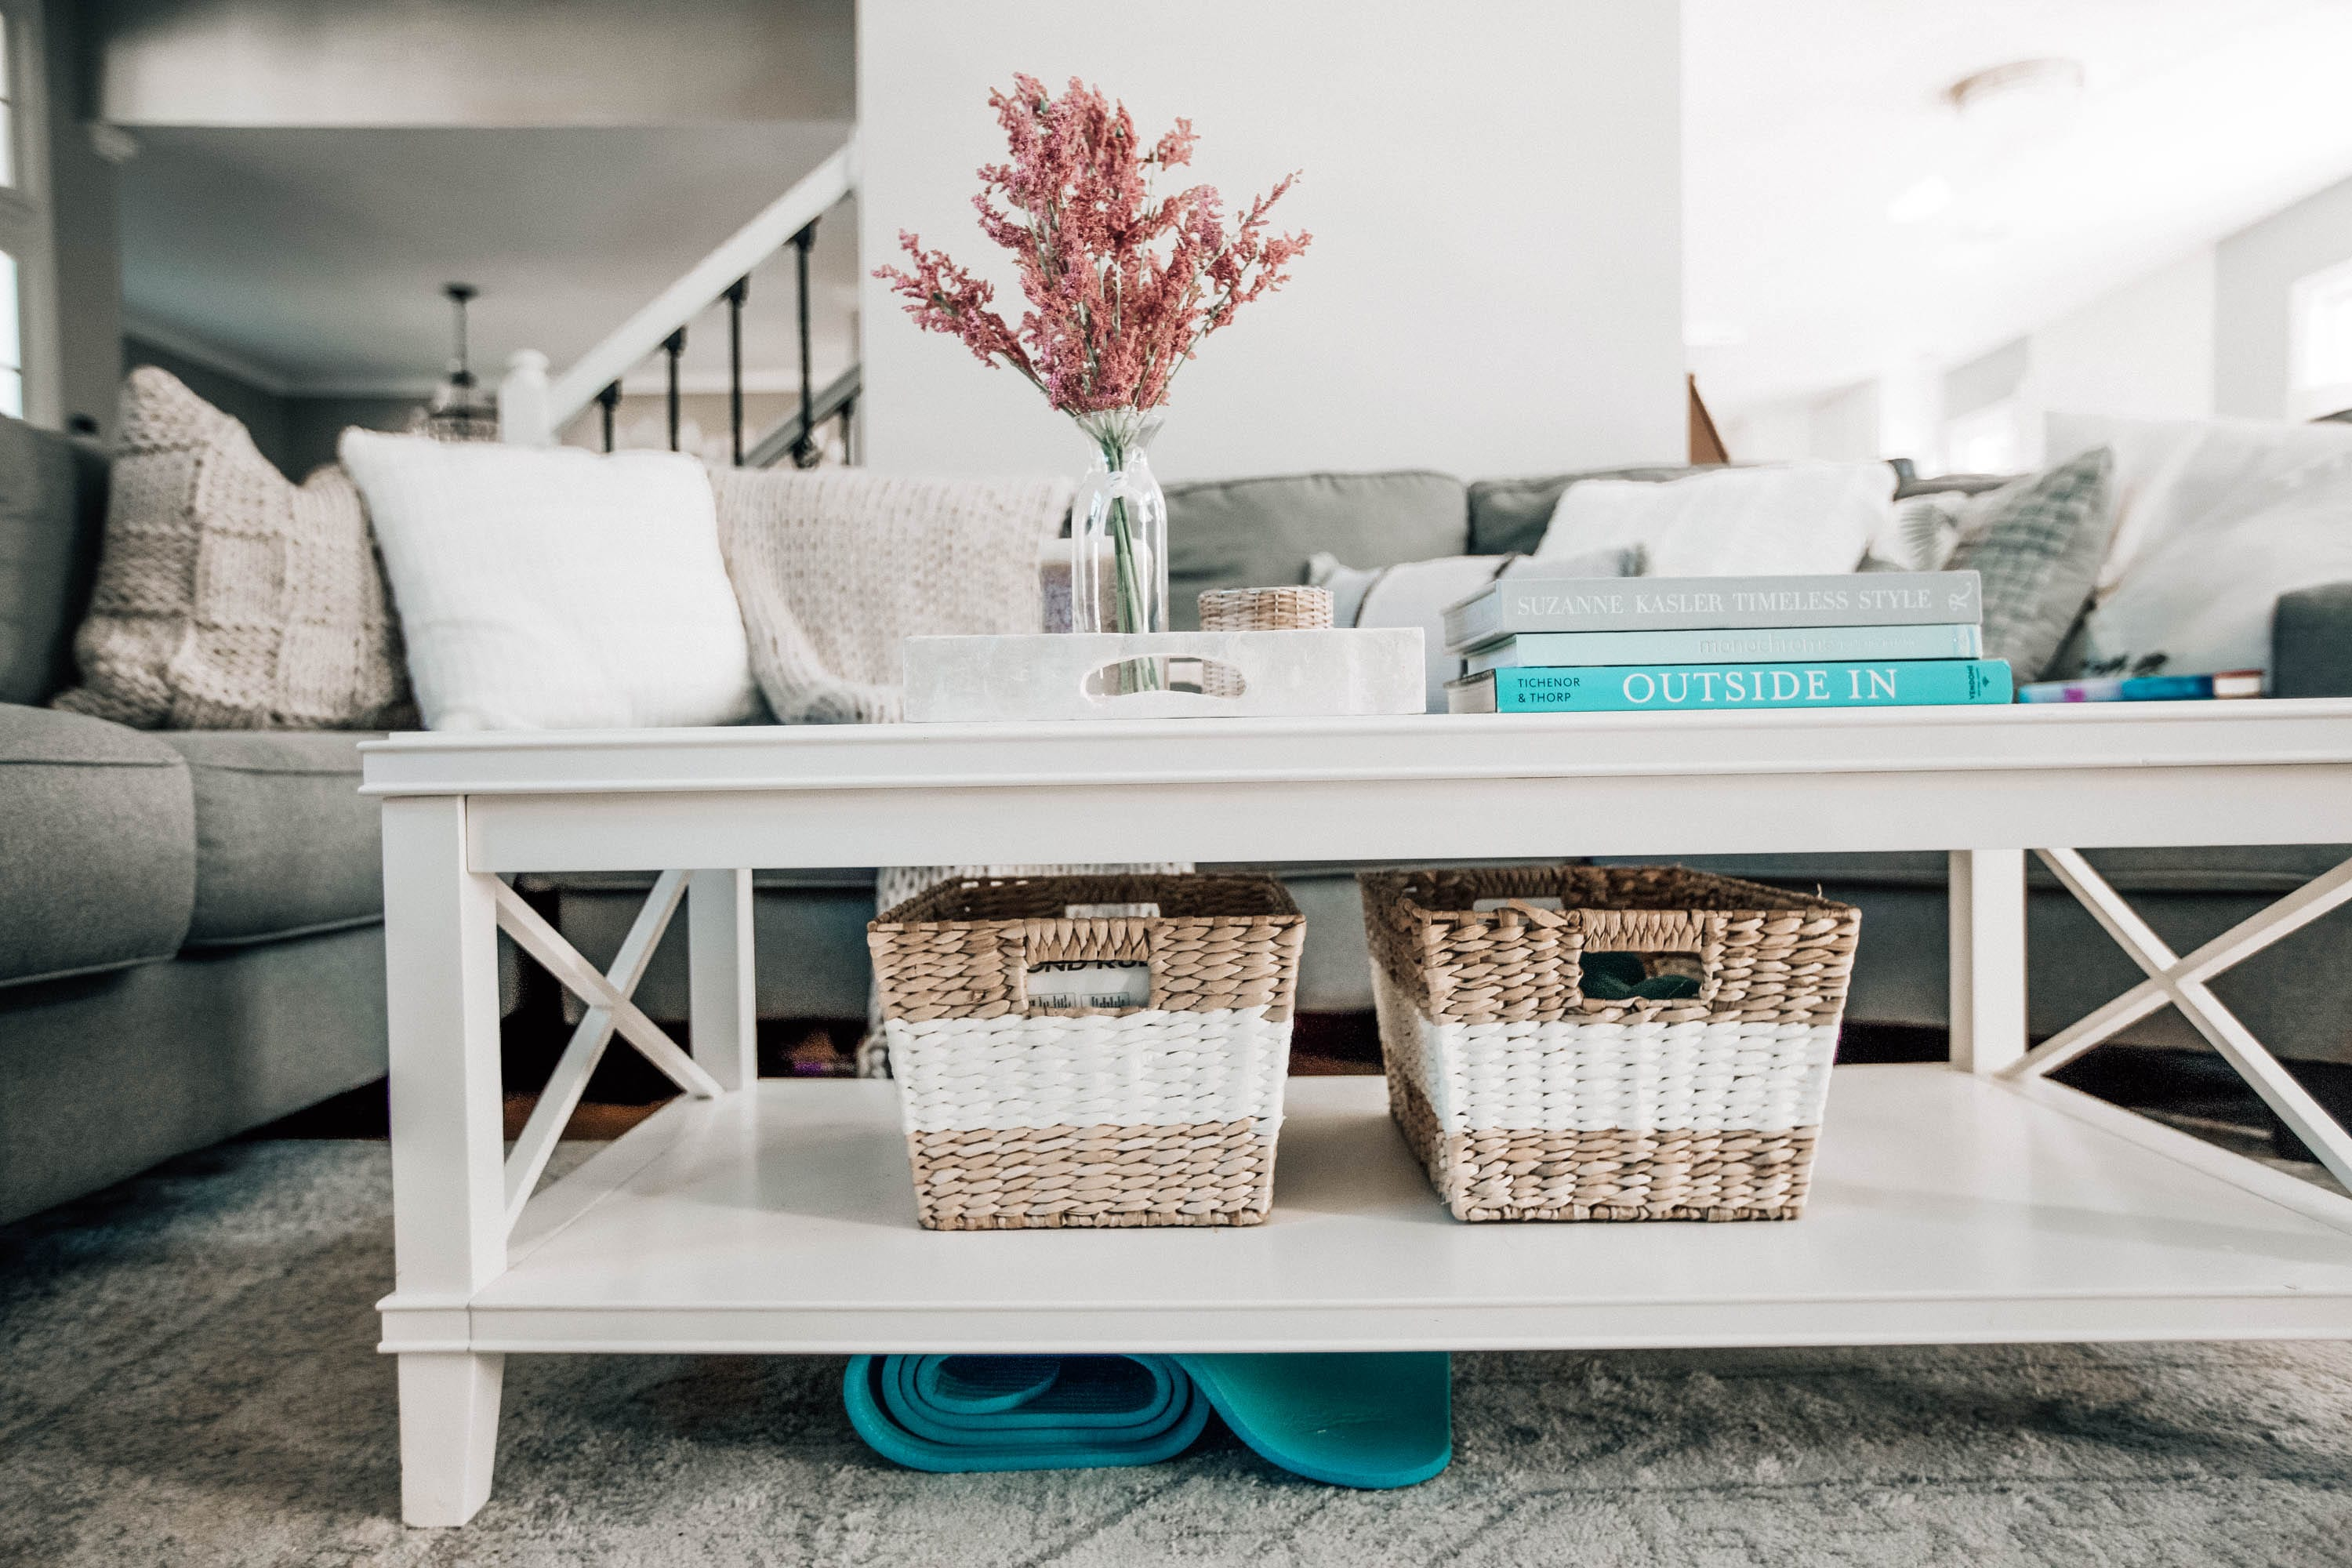 Ways To Organize Your Home With Baskets Pretty In The Pines North Carolina Lifestyle And Fashion Blog